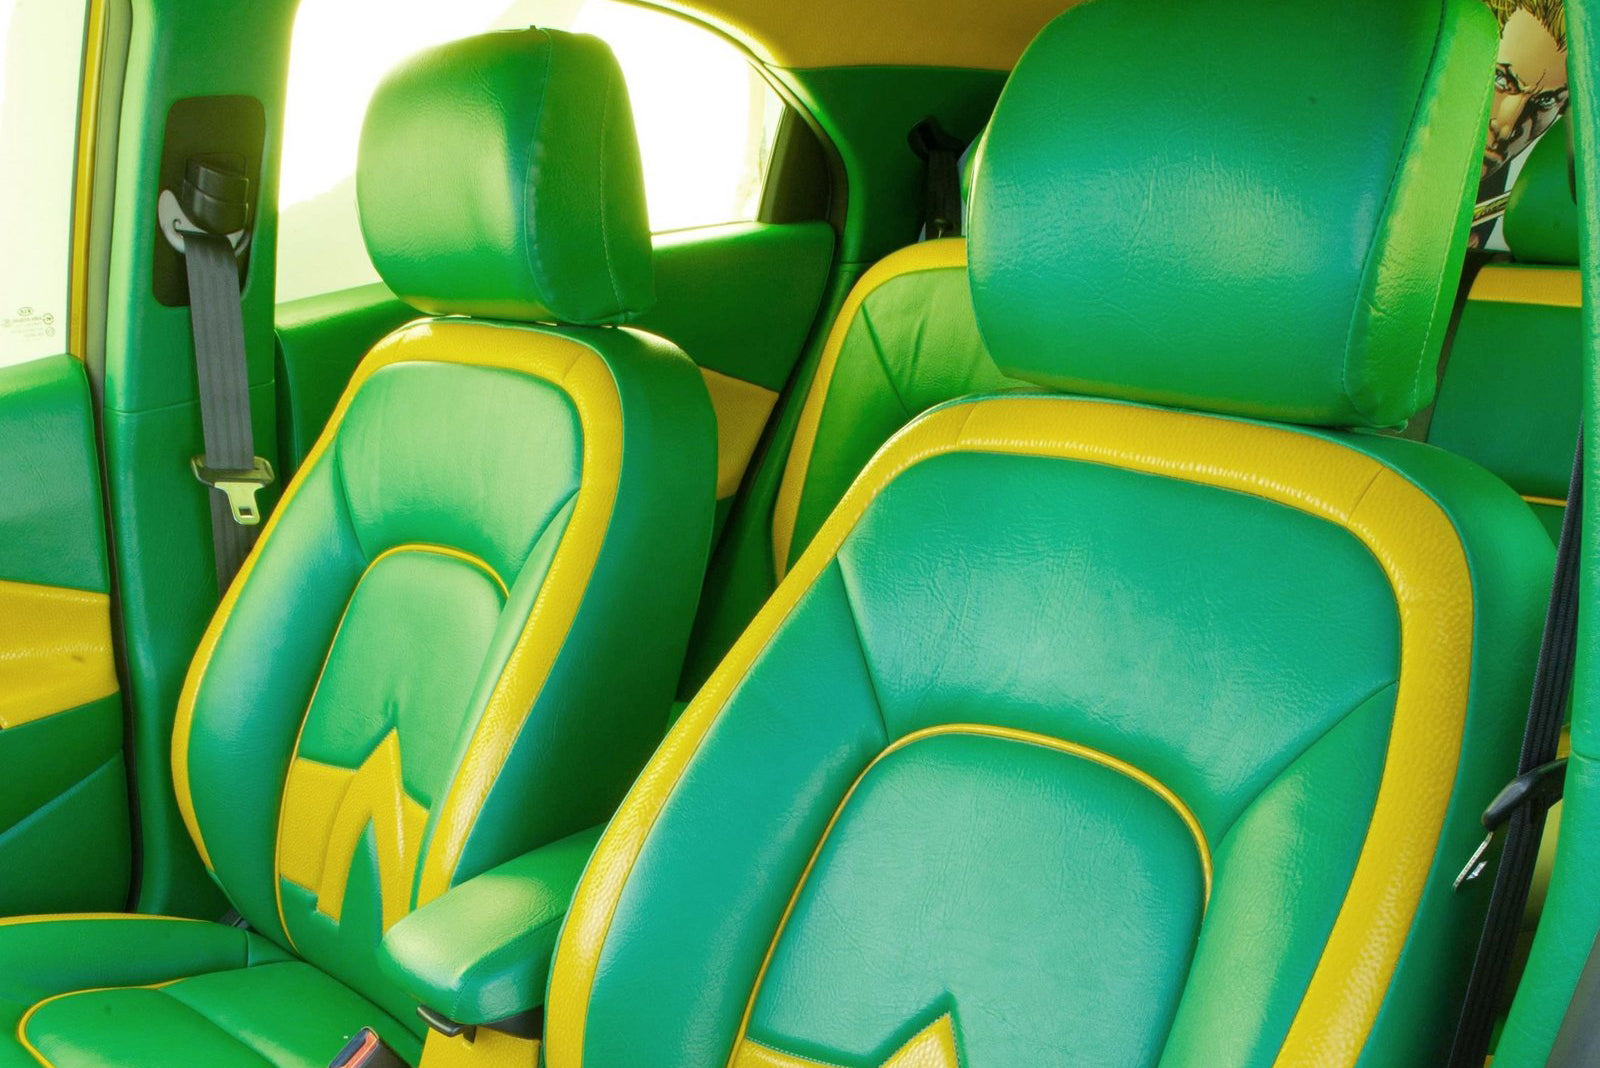 Fifth Silde: SEMA 2012 Kia 5-Door Rio Aquaman - Car Seat